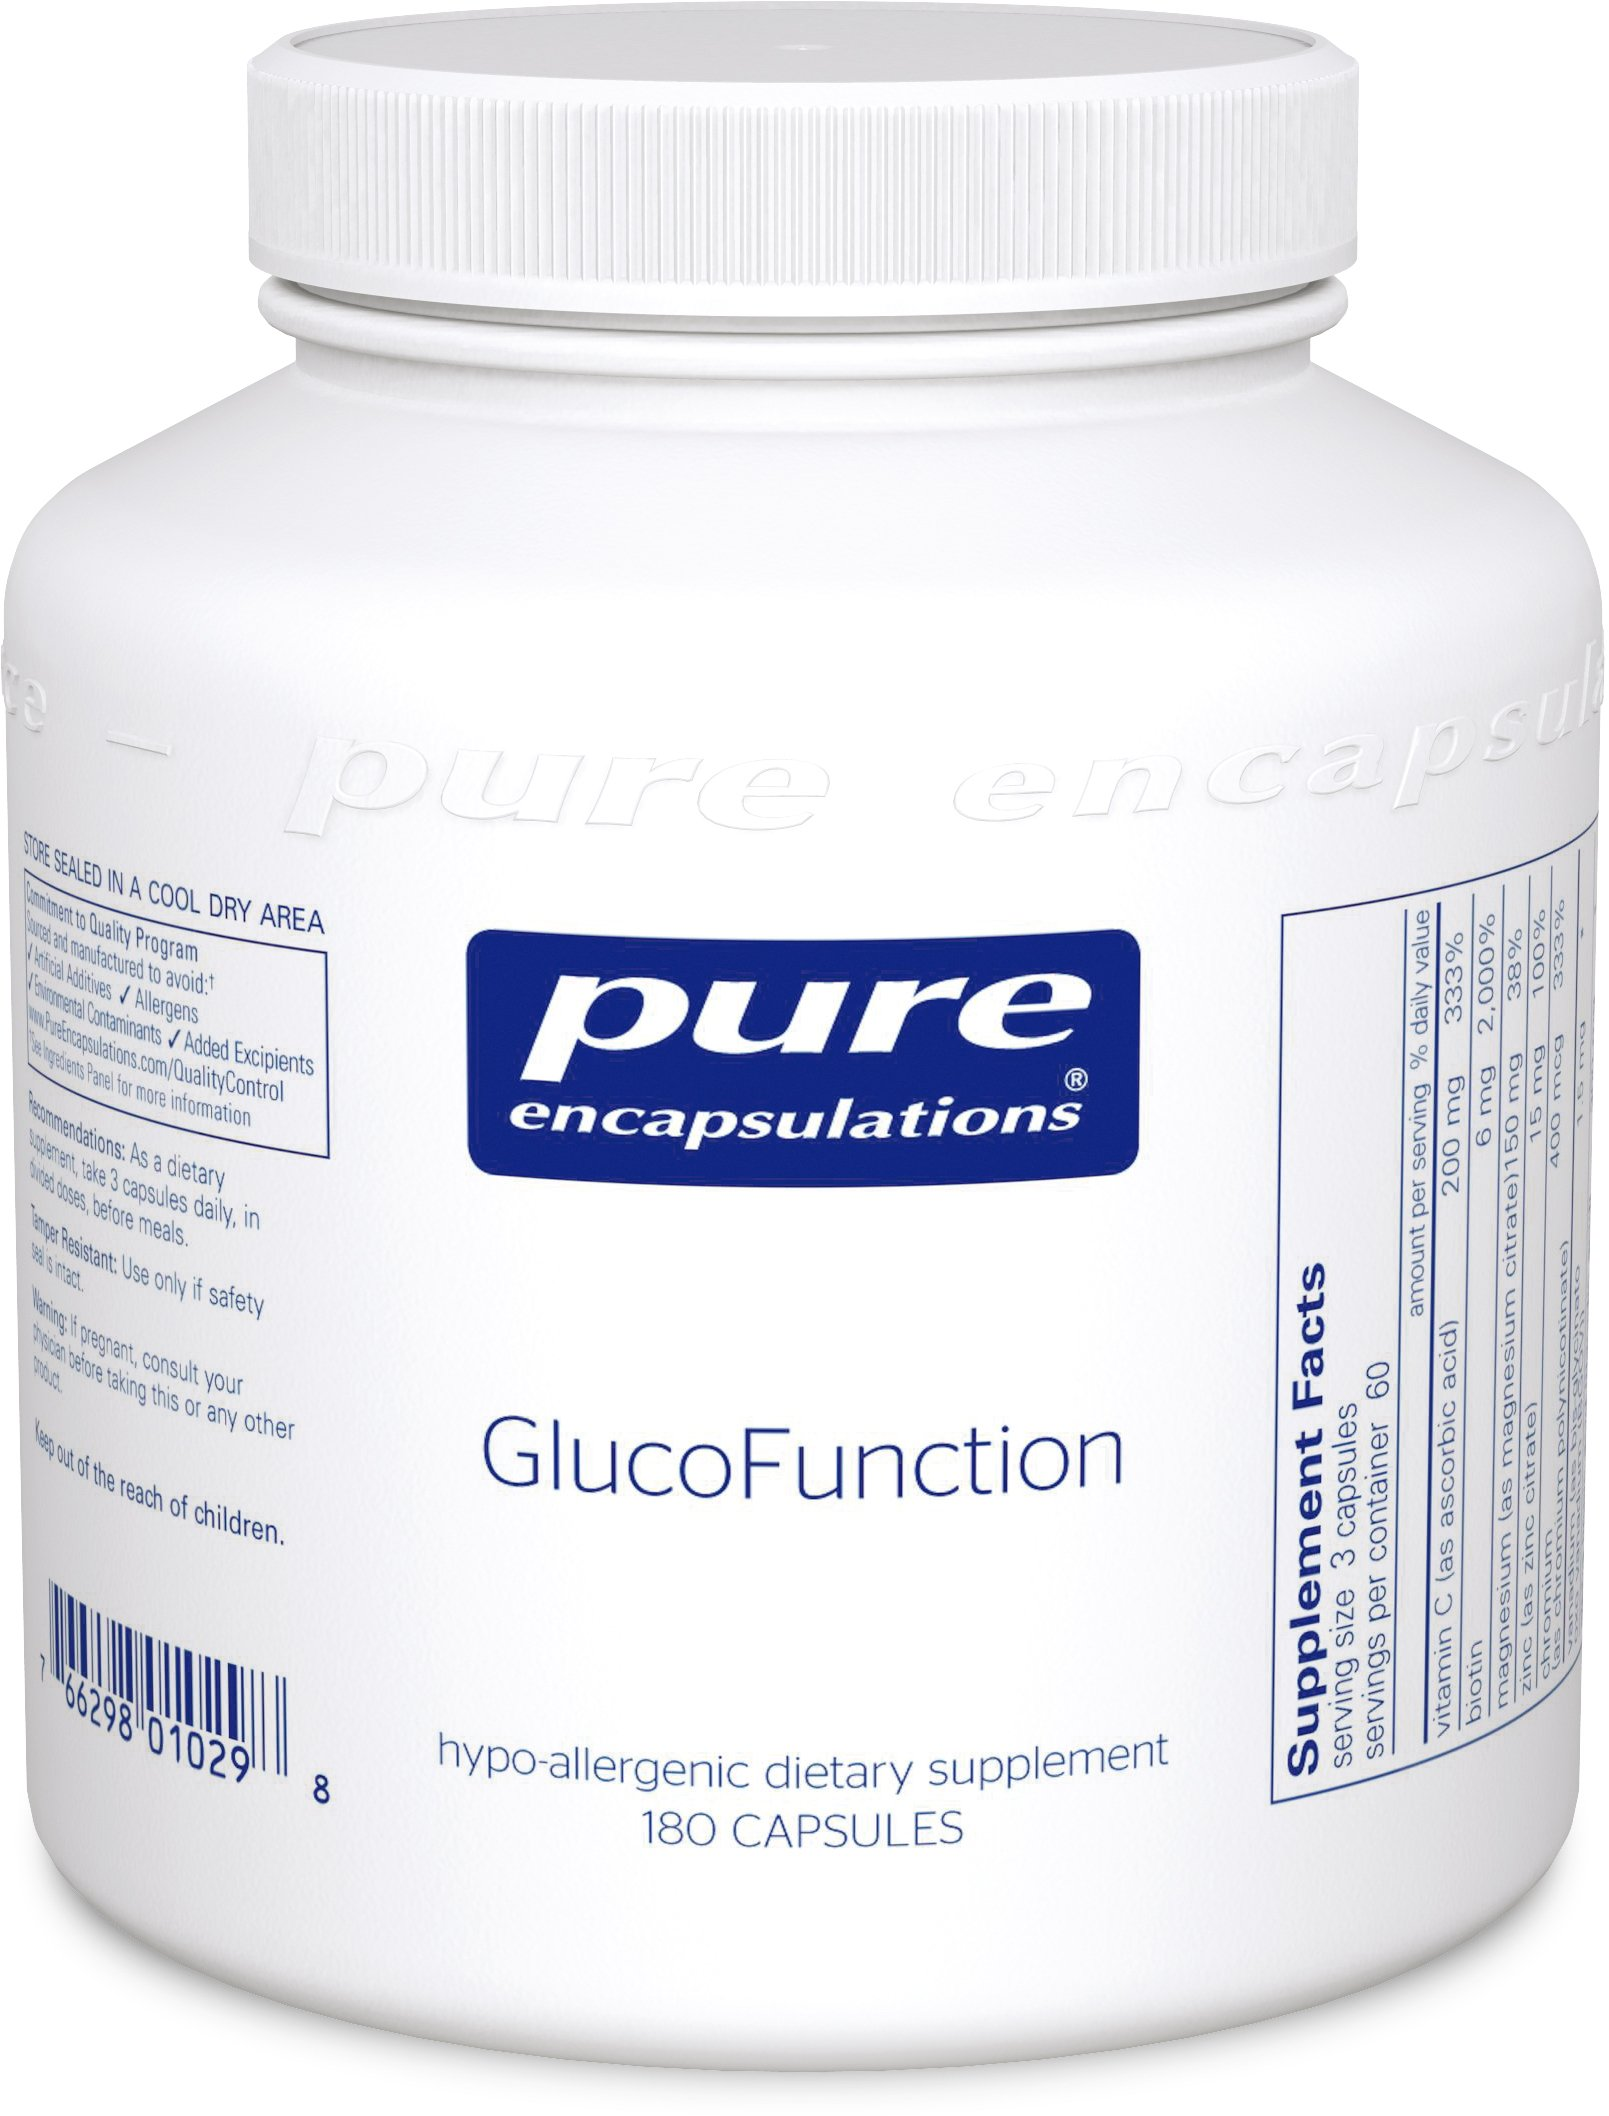 Pure Encapsulations - GlucoFunction - Comprehensive Support for Healthy Glucose Metabolism* - 180 Capsules